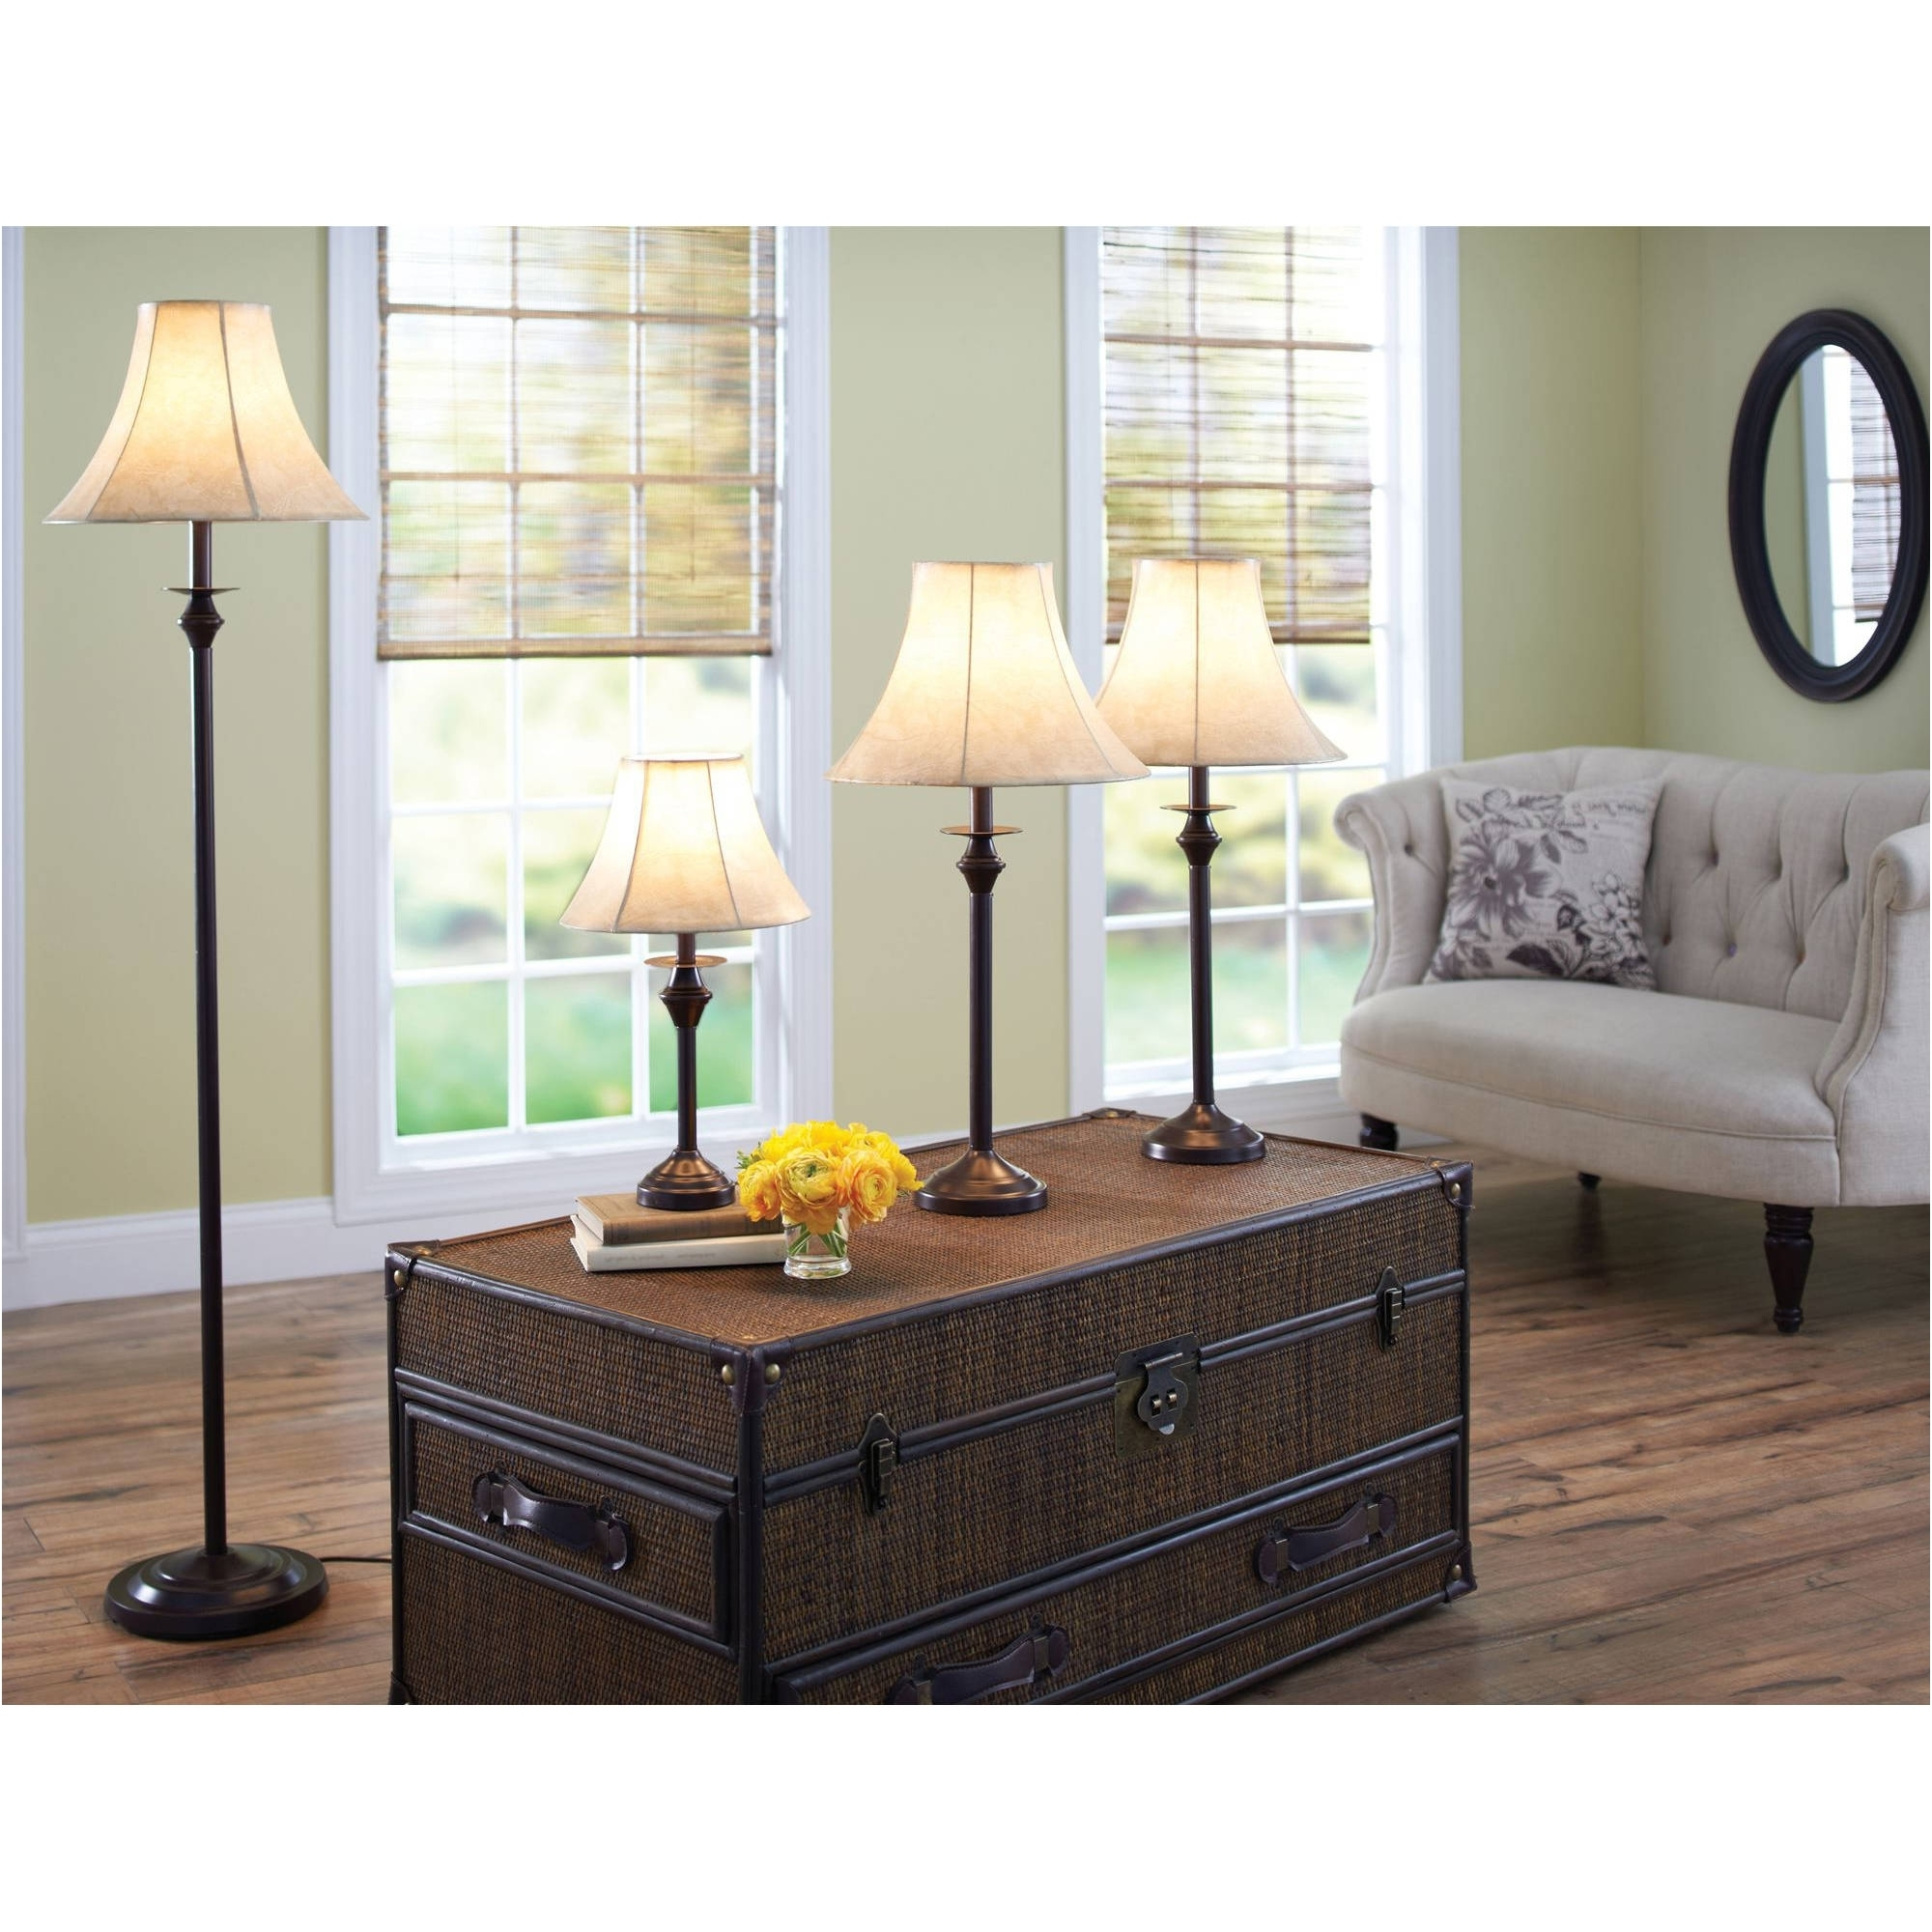 Fashionable Walmart Desk Fan Design Ideas On Perfect The Best 100 Bronze Table Intended For Walmart Living Room Table Lamps (View 4 of 20)